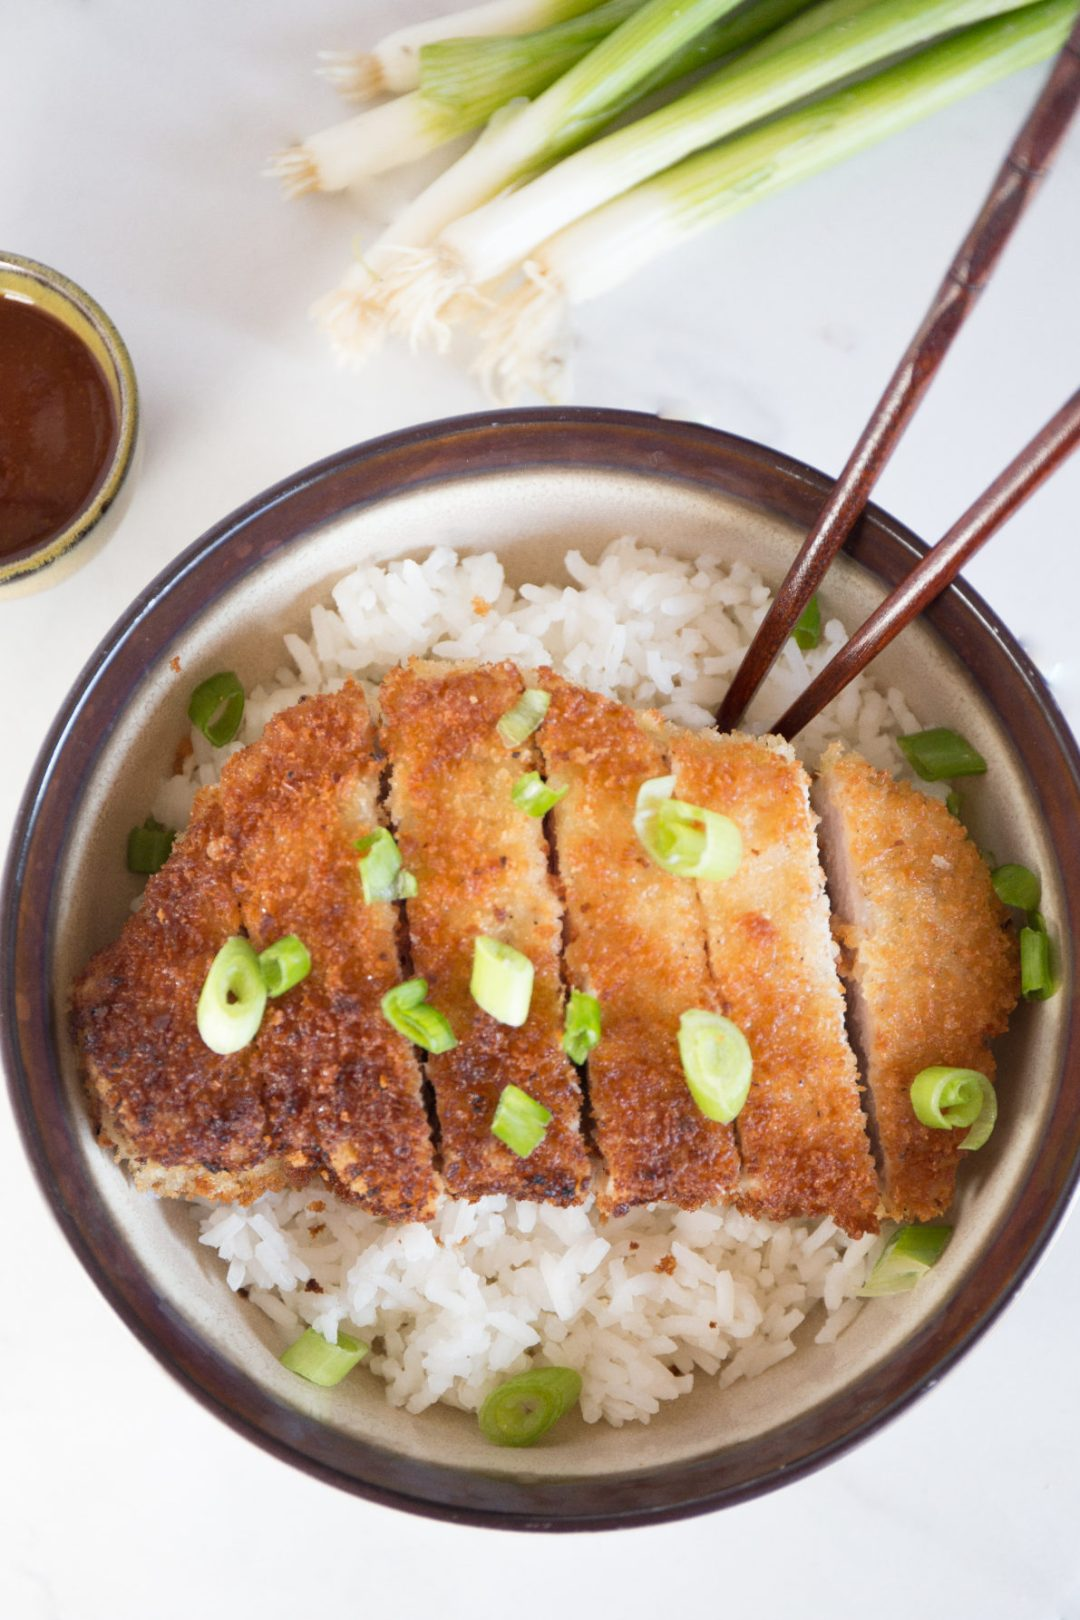 Japanese pork tonkatsu is a traditional dish made up of breaded and fried pork cutlet. The juicy pork on the inside, and the crispy, breaded outer coating creates a delicious meal that is hard to pass up!   wanderzestblog.com #tonkatsu